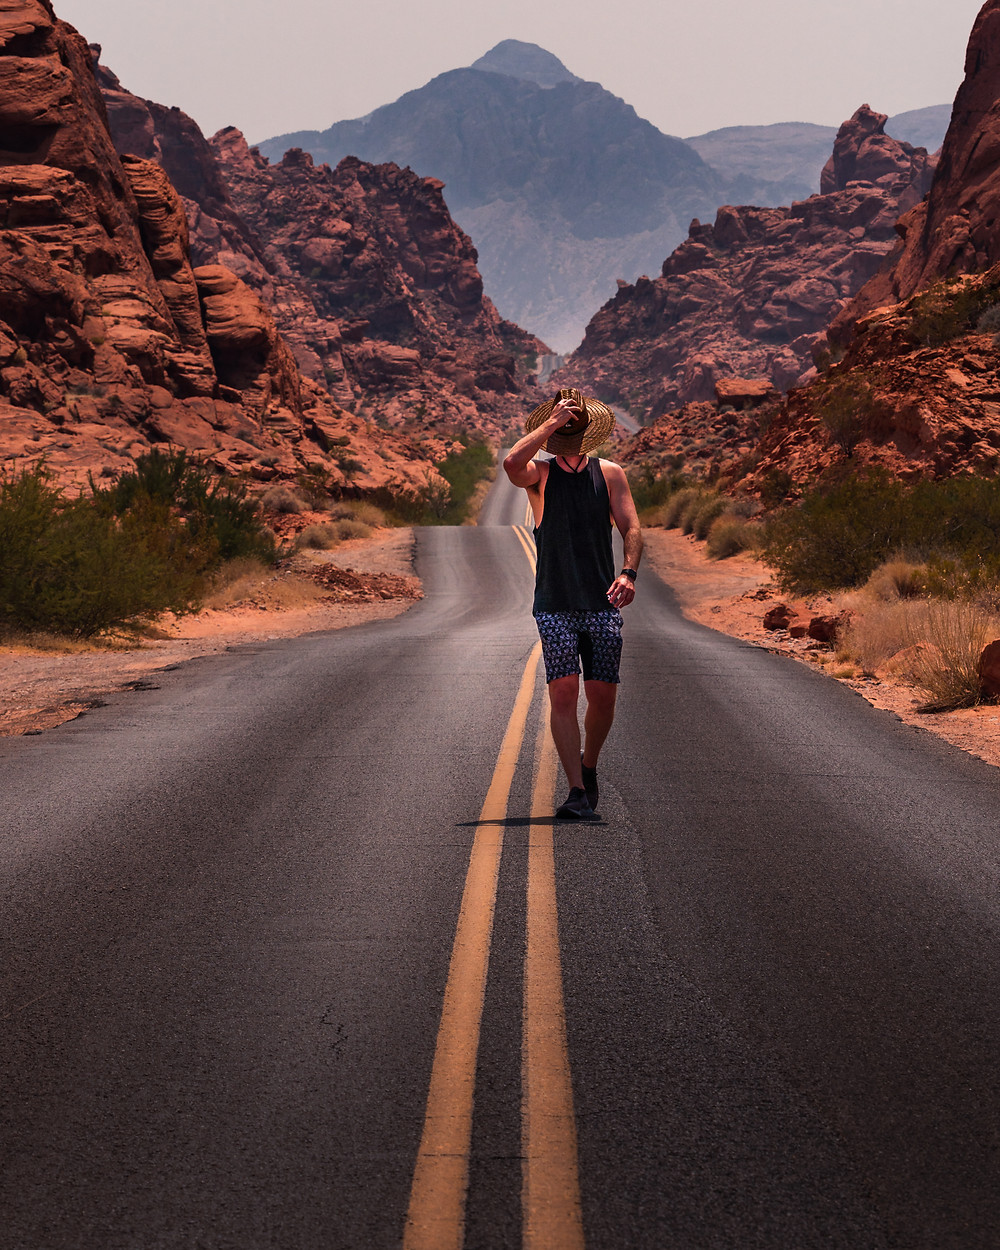 man walking through the desert heat with a hat in the valley of fire